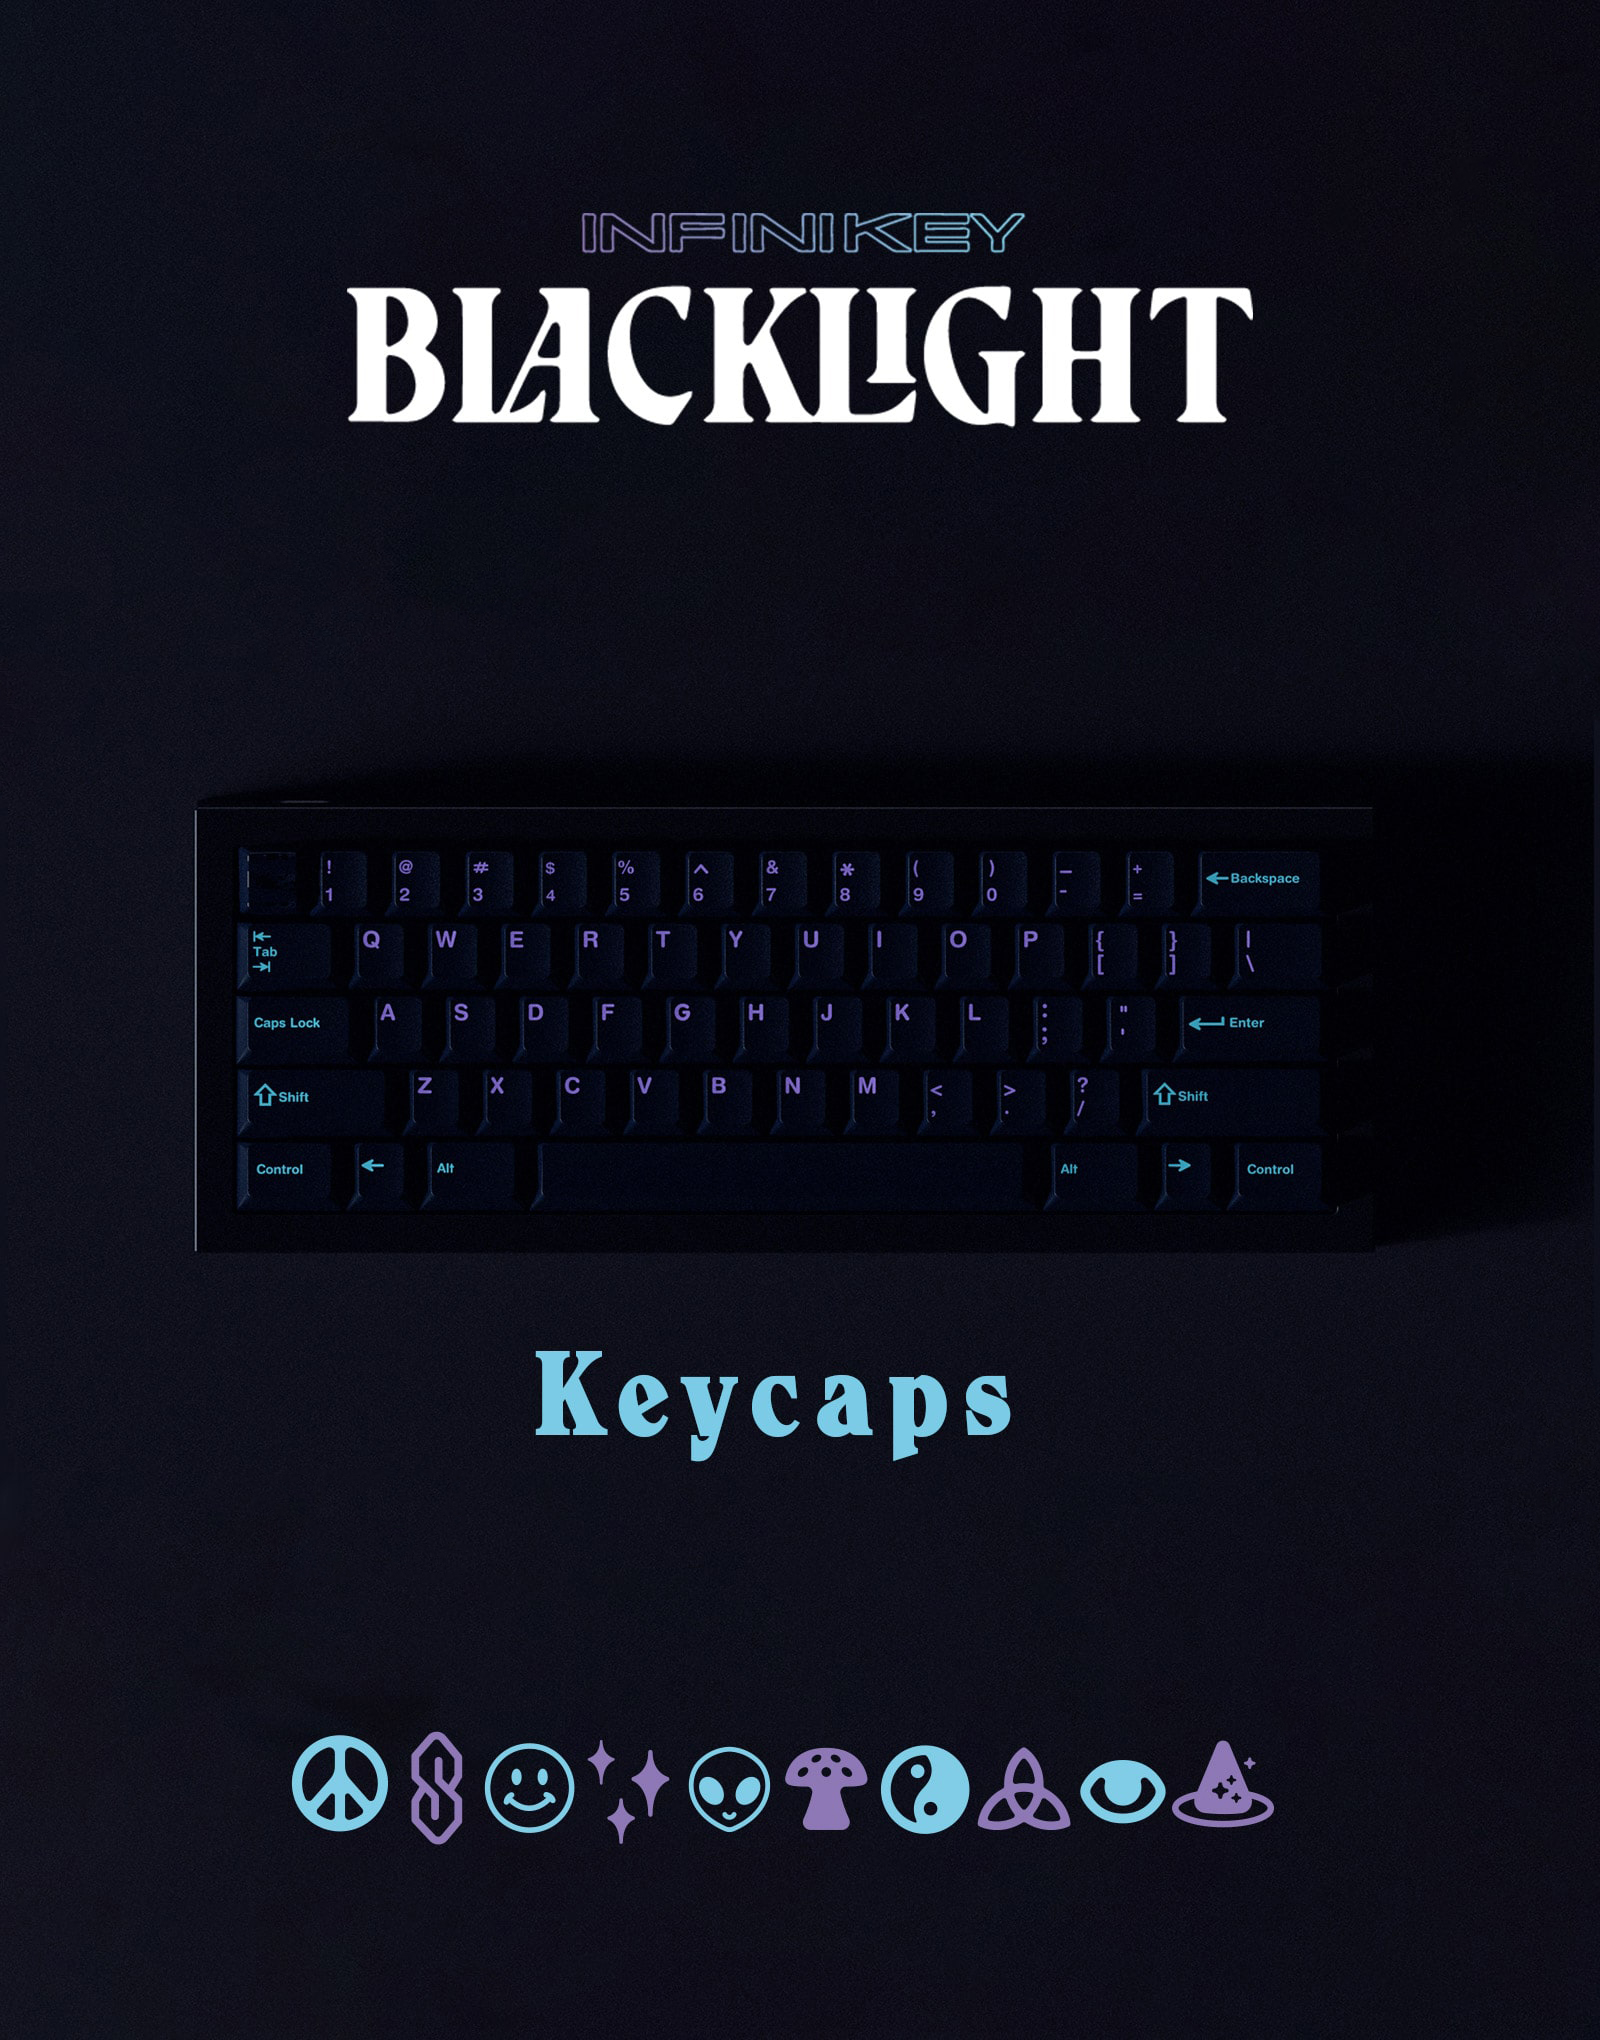 infinikey blacklight